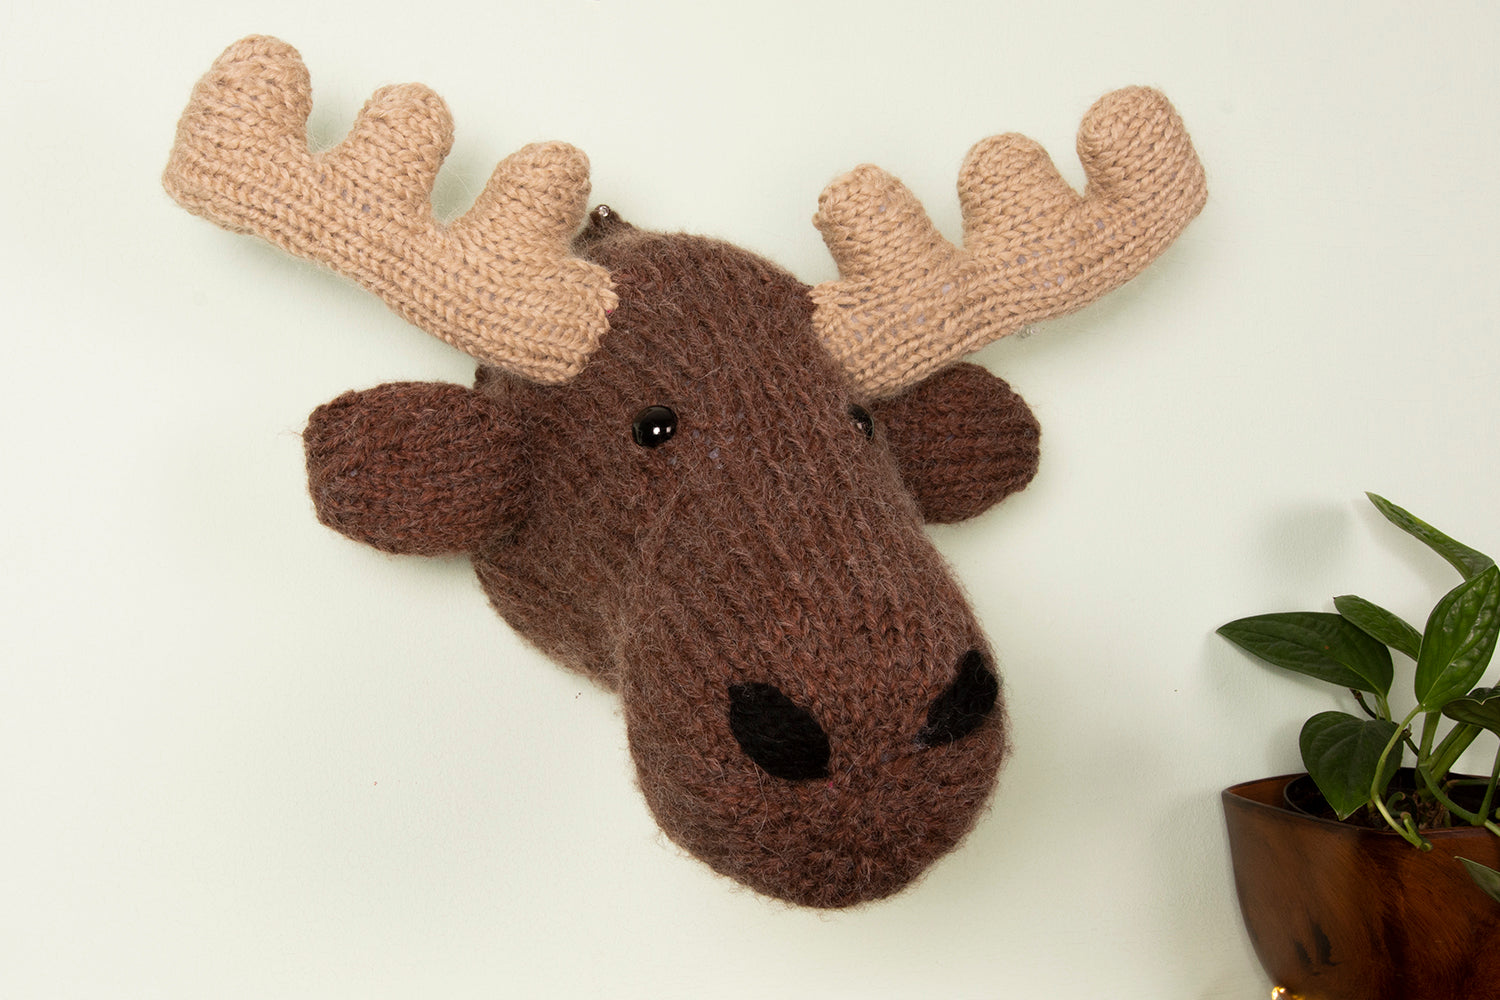 Giant Moose Head Knitting Kit (5889275855005)